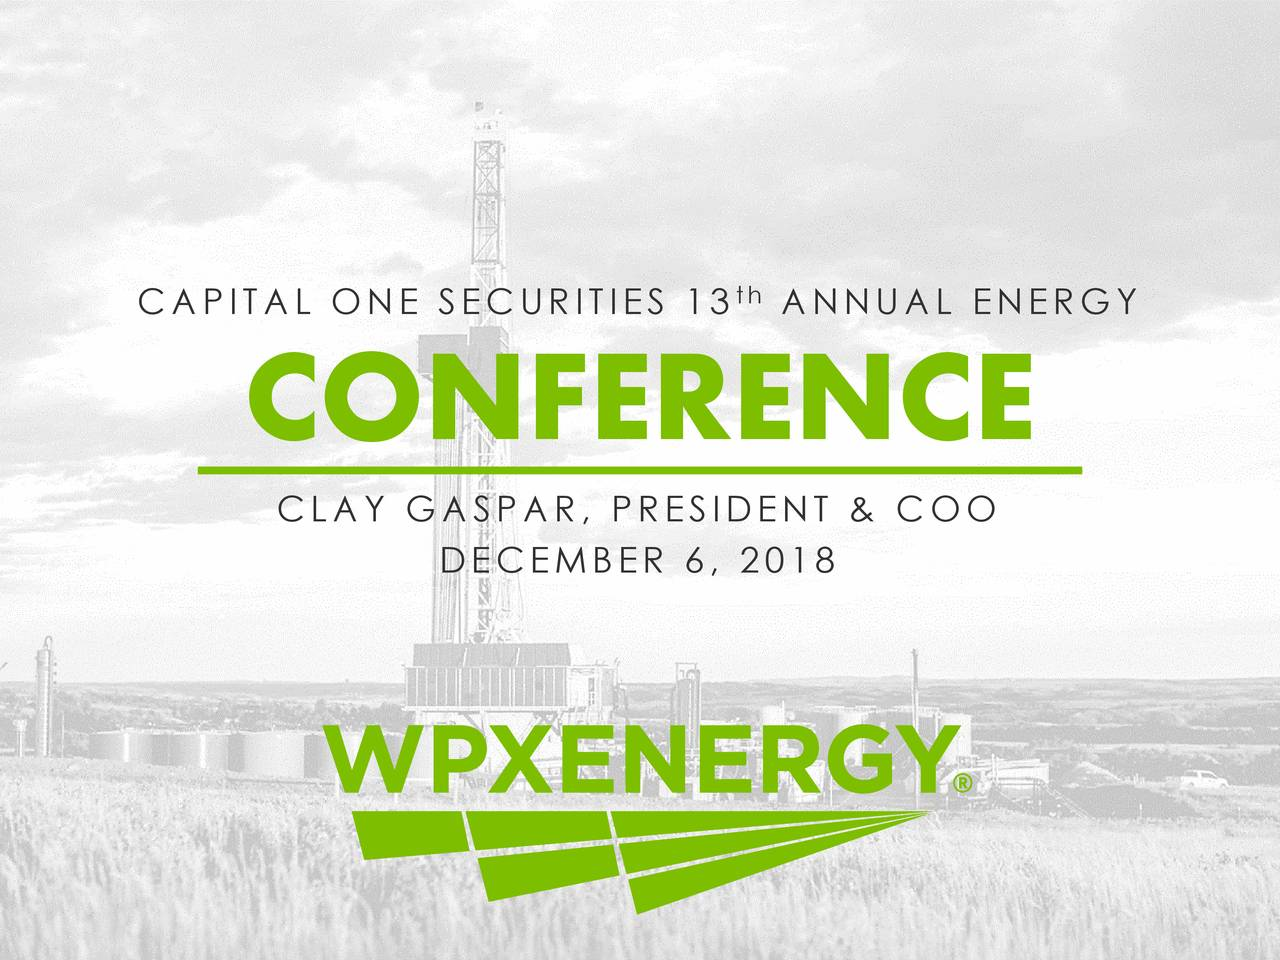 CONFERENCE CLAY GASPAR, PRESIDENT & COO DECEMBER 6, 2018